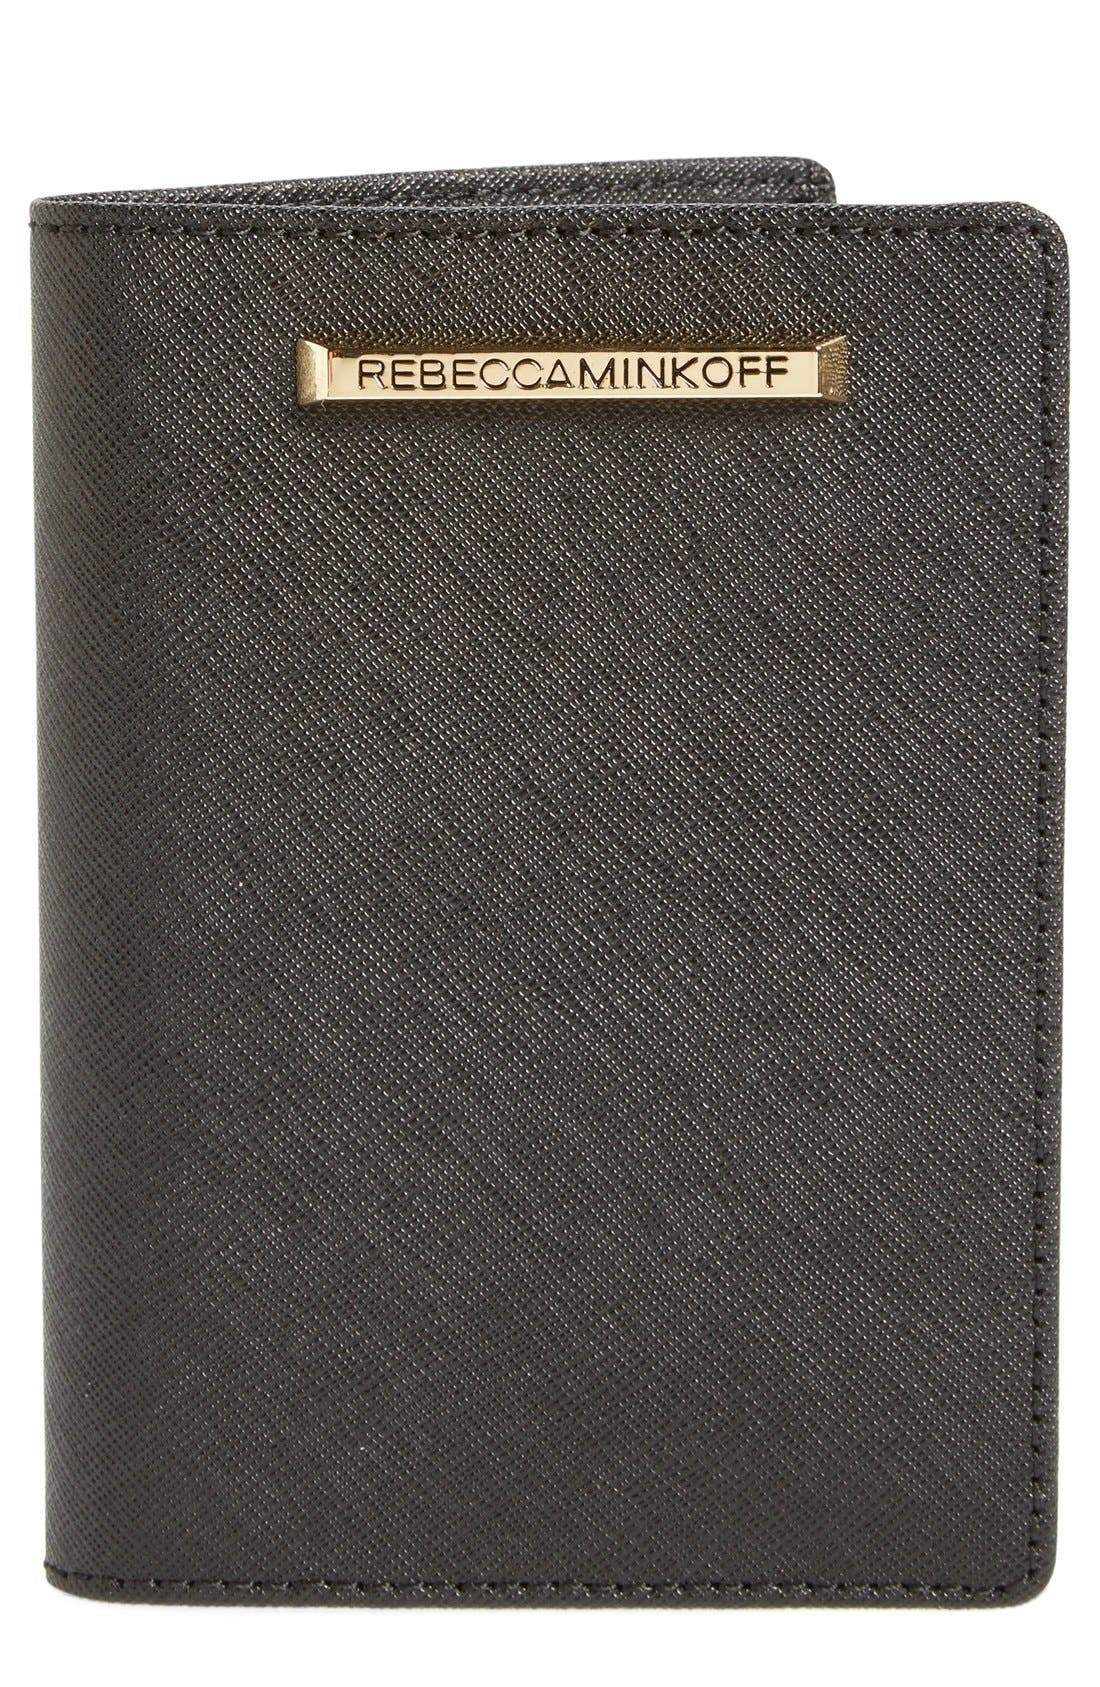 Alternate Image 1 Selected - Rebecca Minkoff Passport Holder